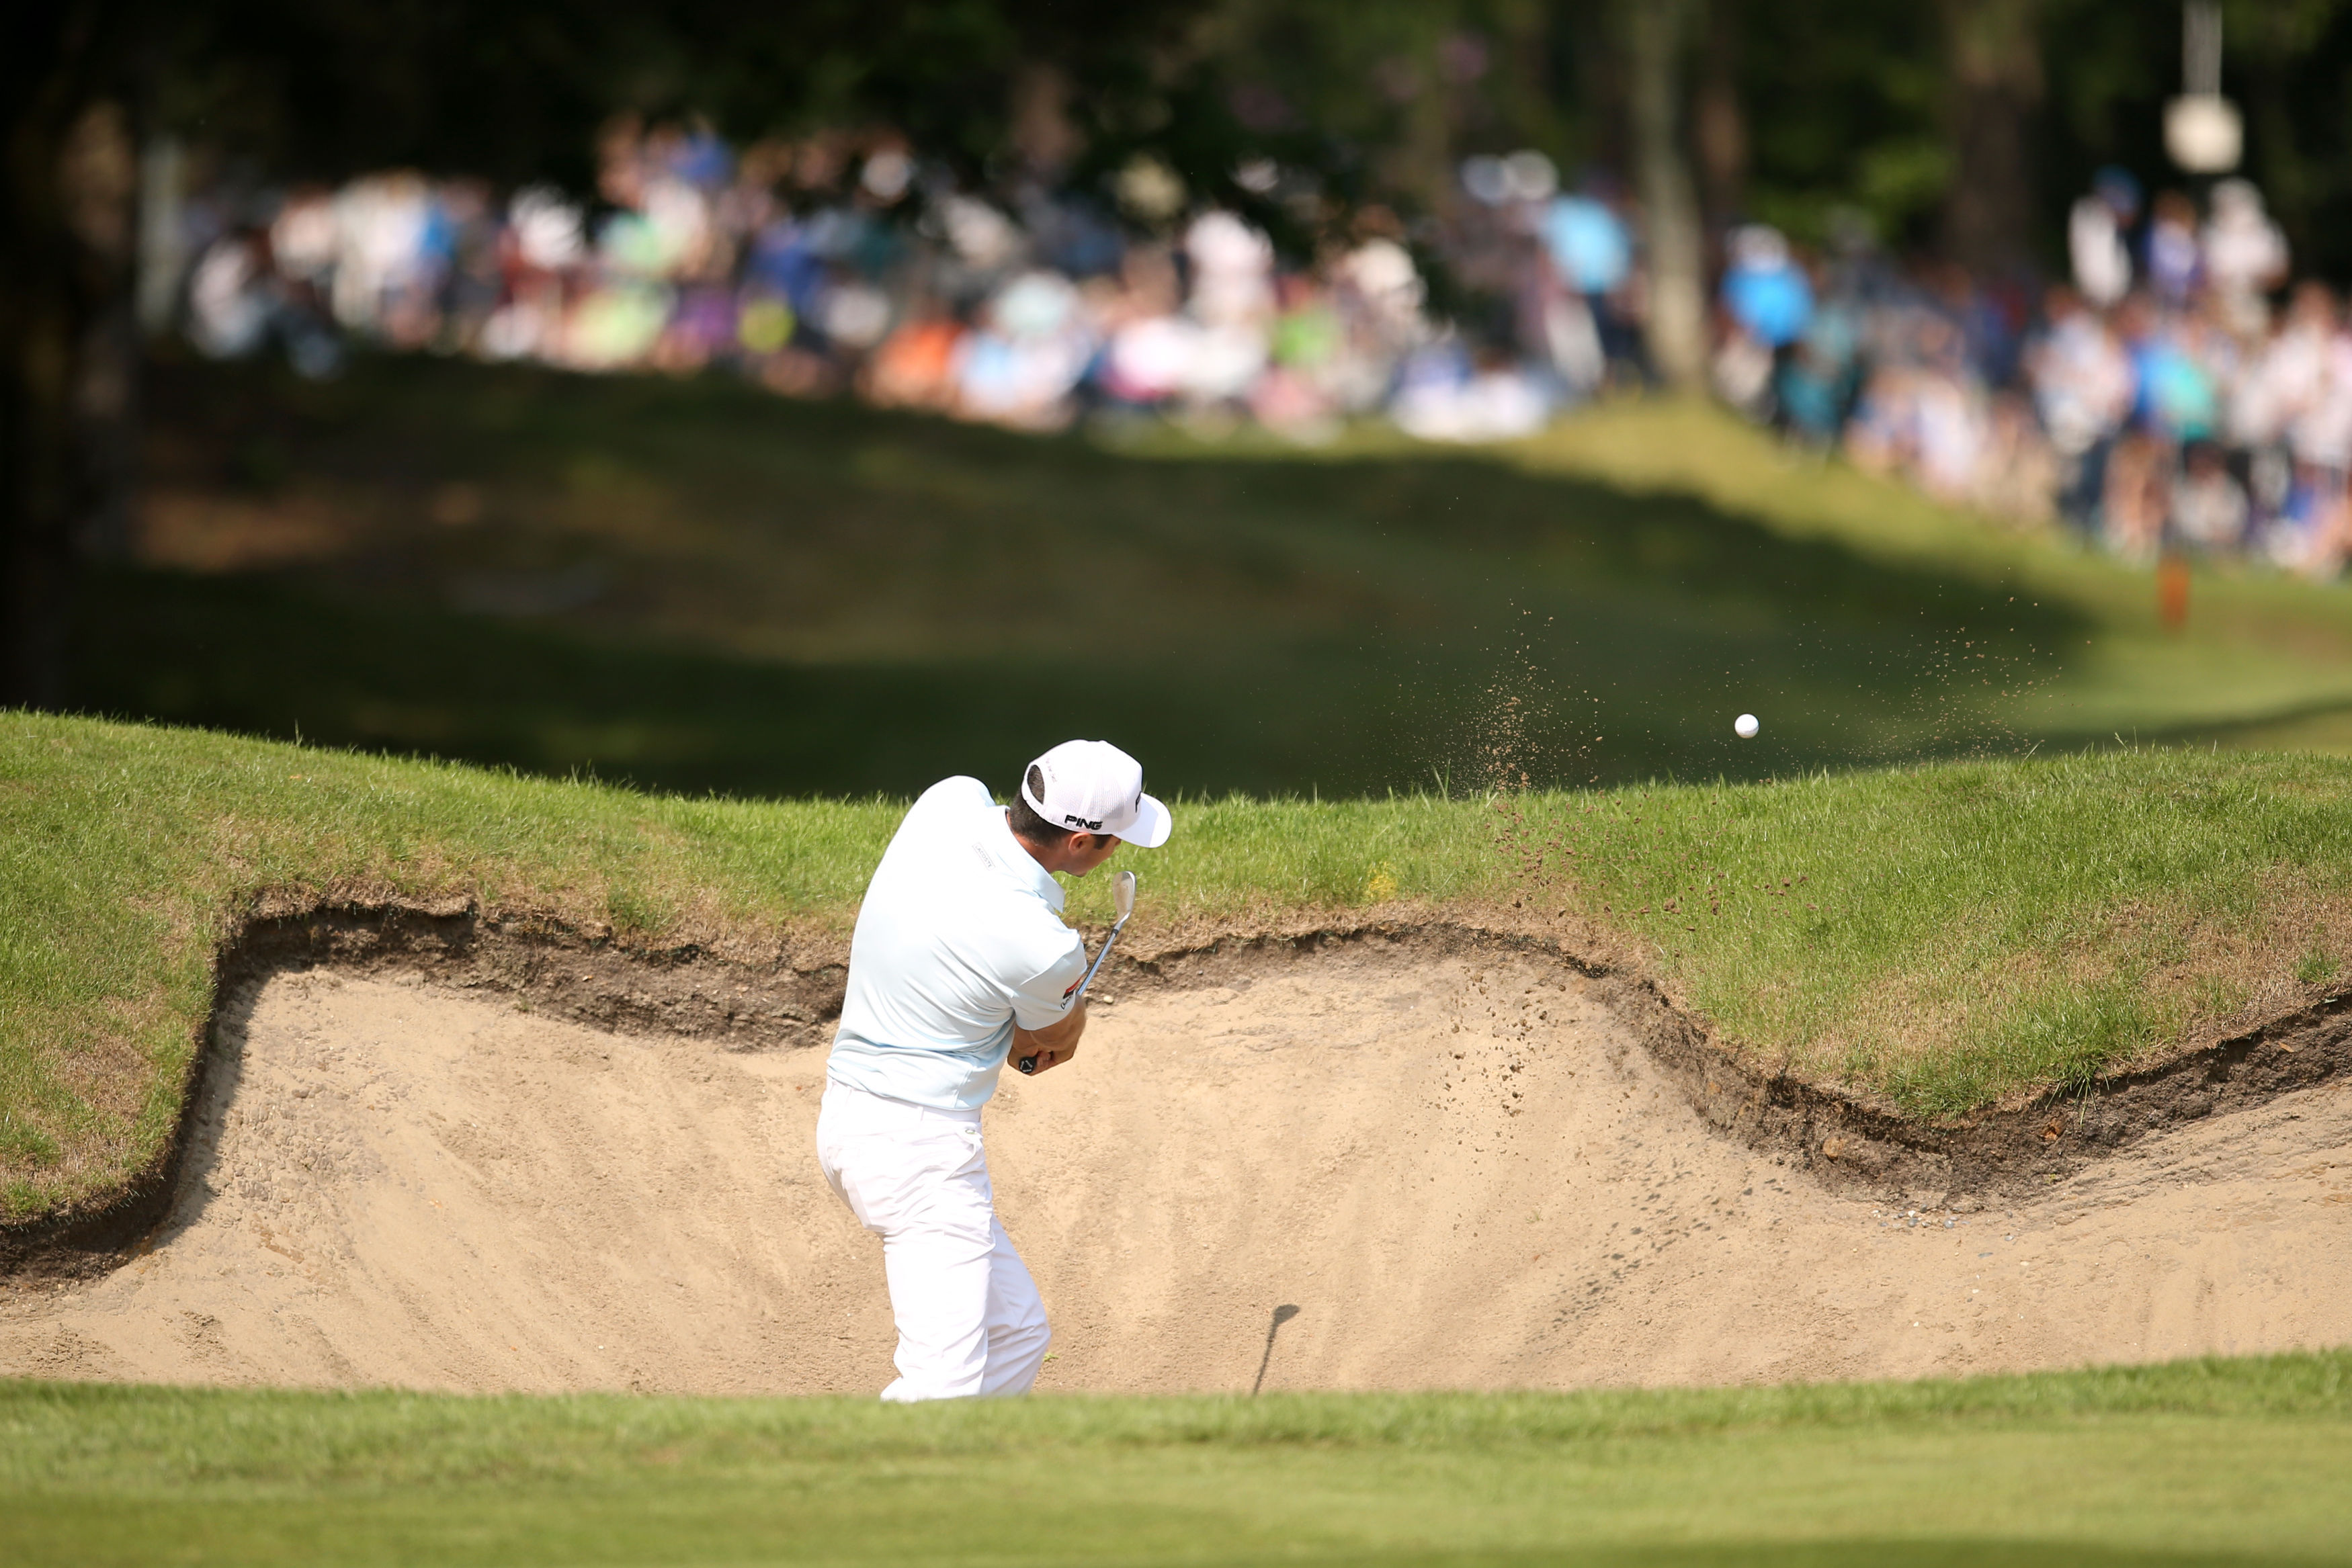 France's Julien Quesne plays a bunker shot on the 13th hole, during day four of the PGA golf Championship at Wentworth Club, Windsor, England, Sunday, May 29, 2016. (Steve Paston/PA via AP)     UNITED KINGDOM OUT        -      NO SALES      -      NO ARCH